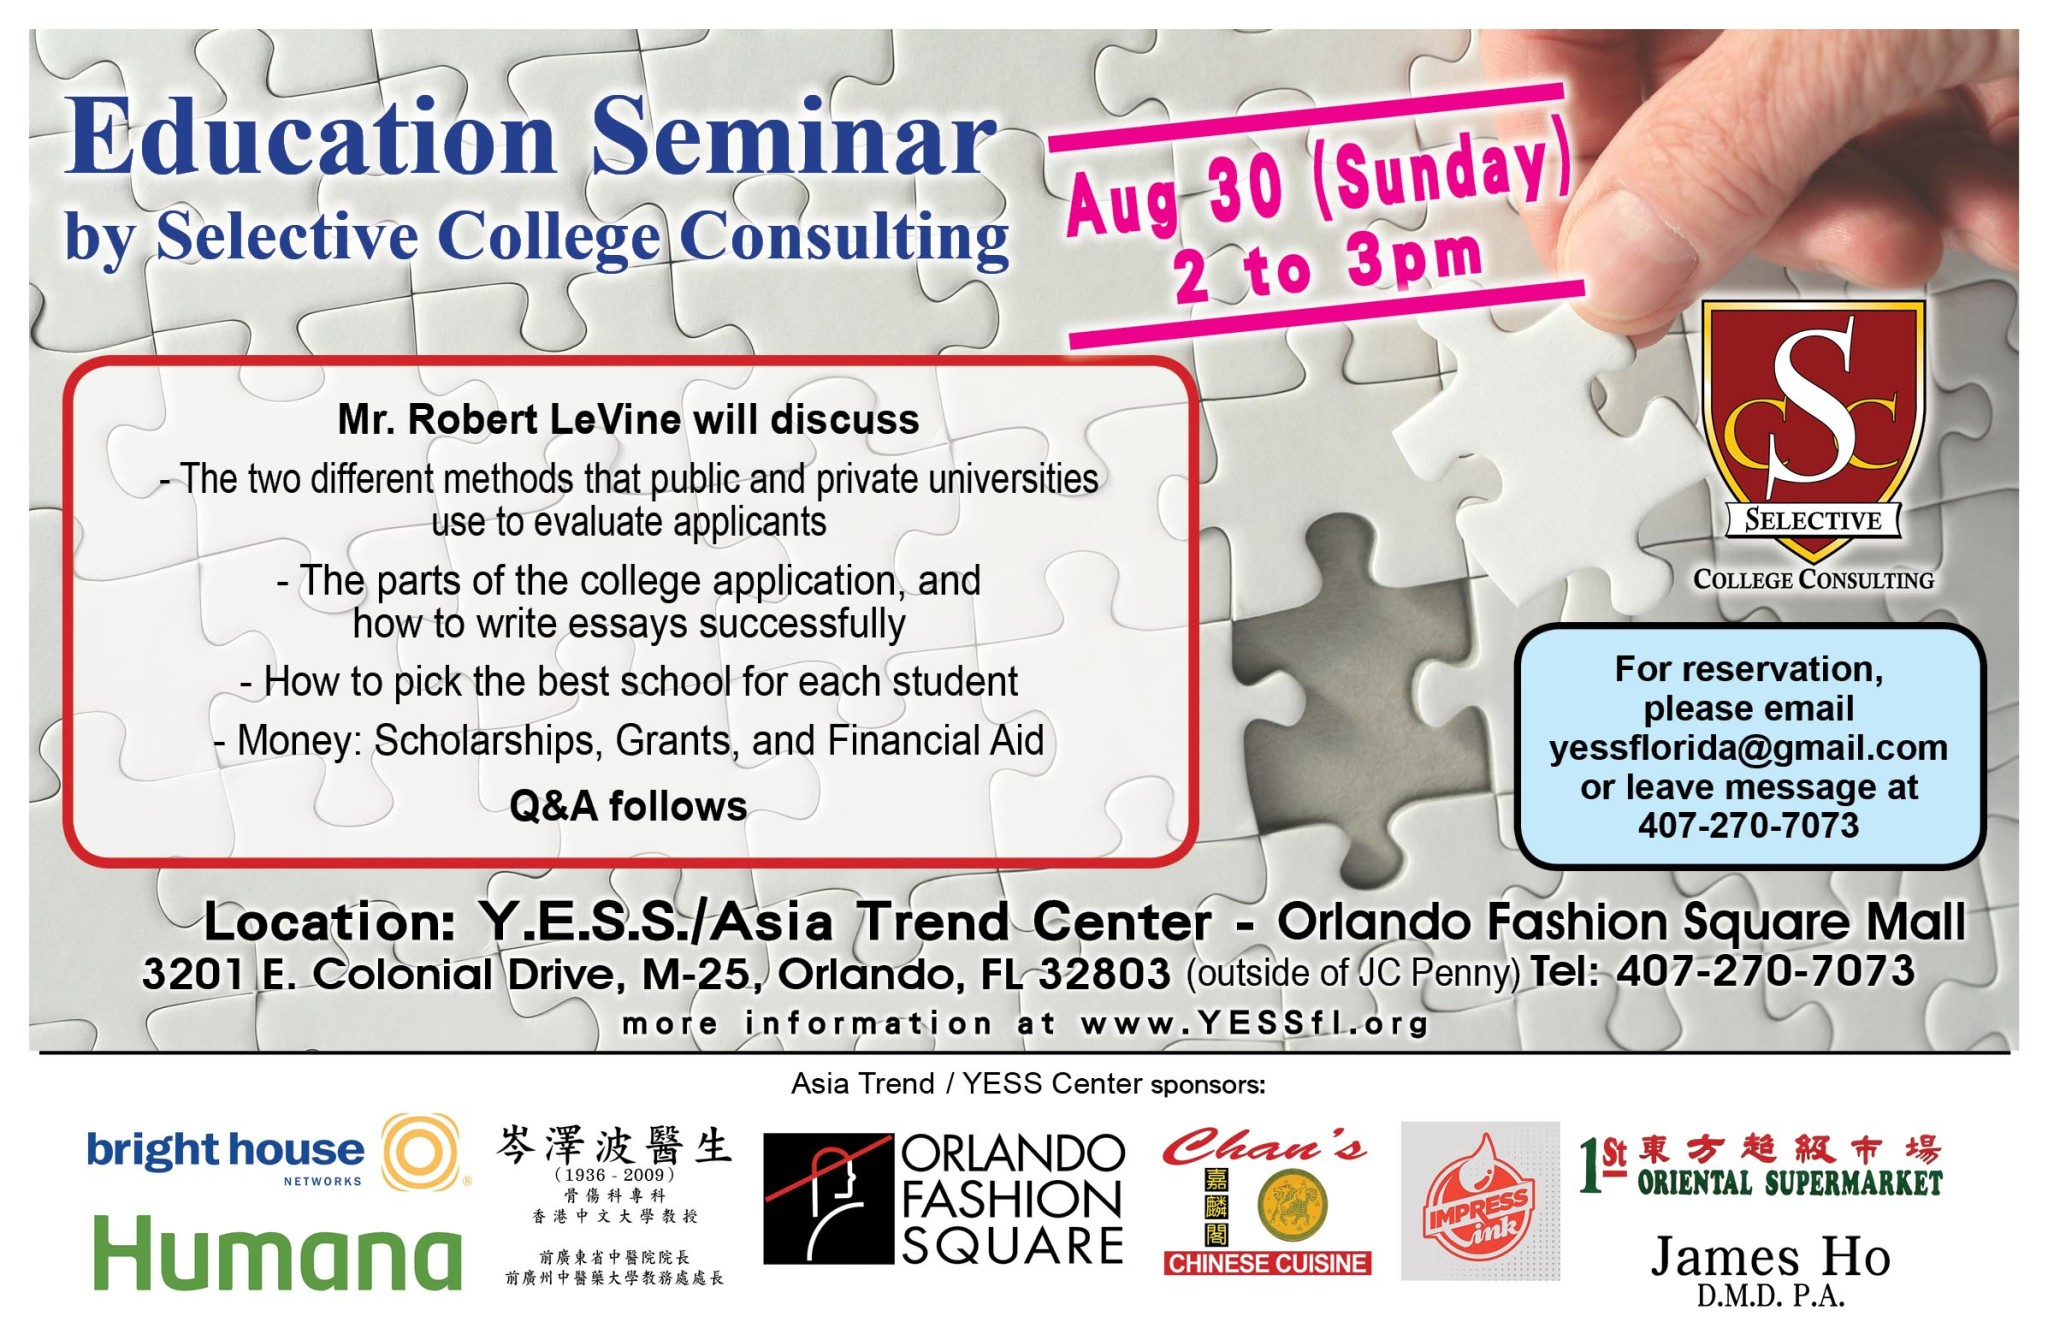 Education Seminar by Selective College Consulting